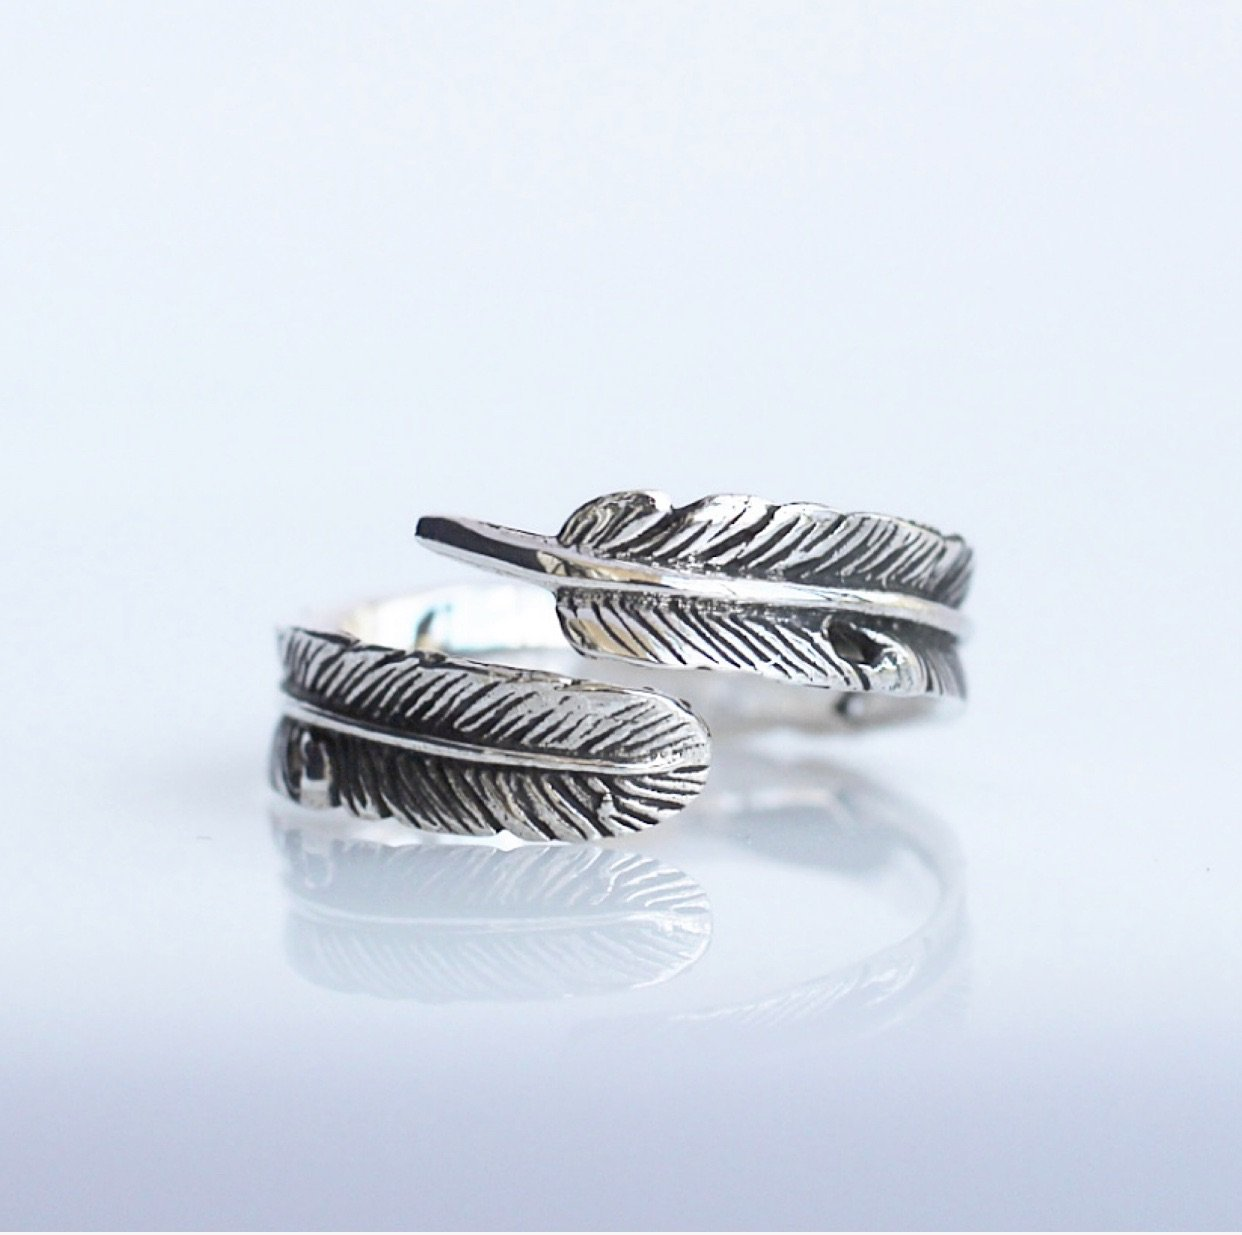 Boho Chic Ring, Adjustable feather ring, Sterling silver feather ring, gift ideas, gifts for her, popular jewelry, adjustable ring by KesleyBoutique.com, Girlwith3jobs.com